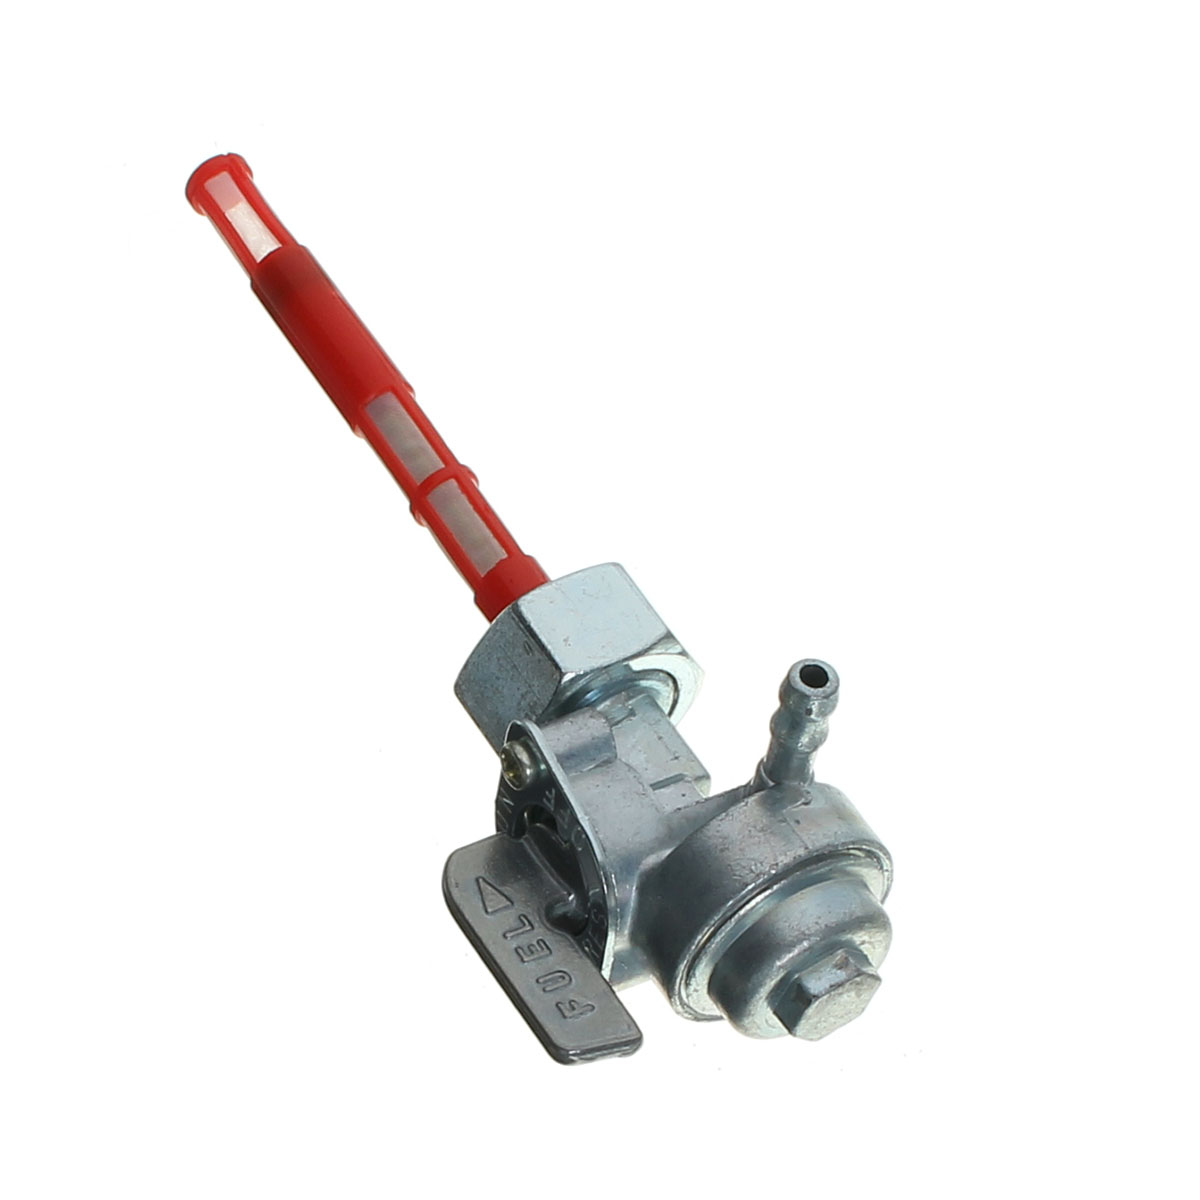 1998 R1 >> Other Motorcycle Parts - 14mm Gas Petcock Fuel Tap Valve Switch Pump Petcock For Honda/Suzuki ...